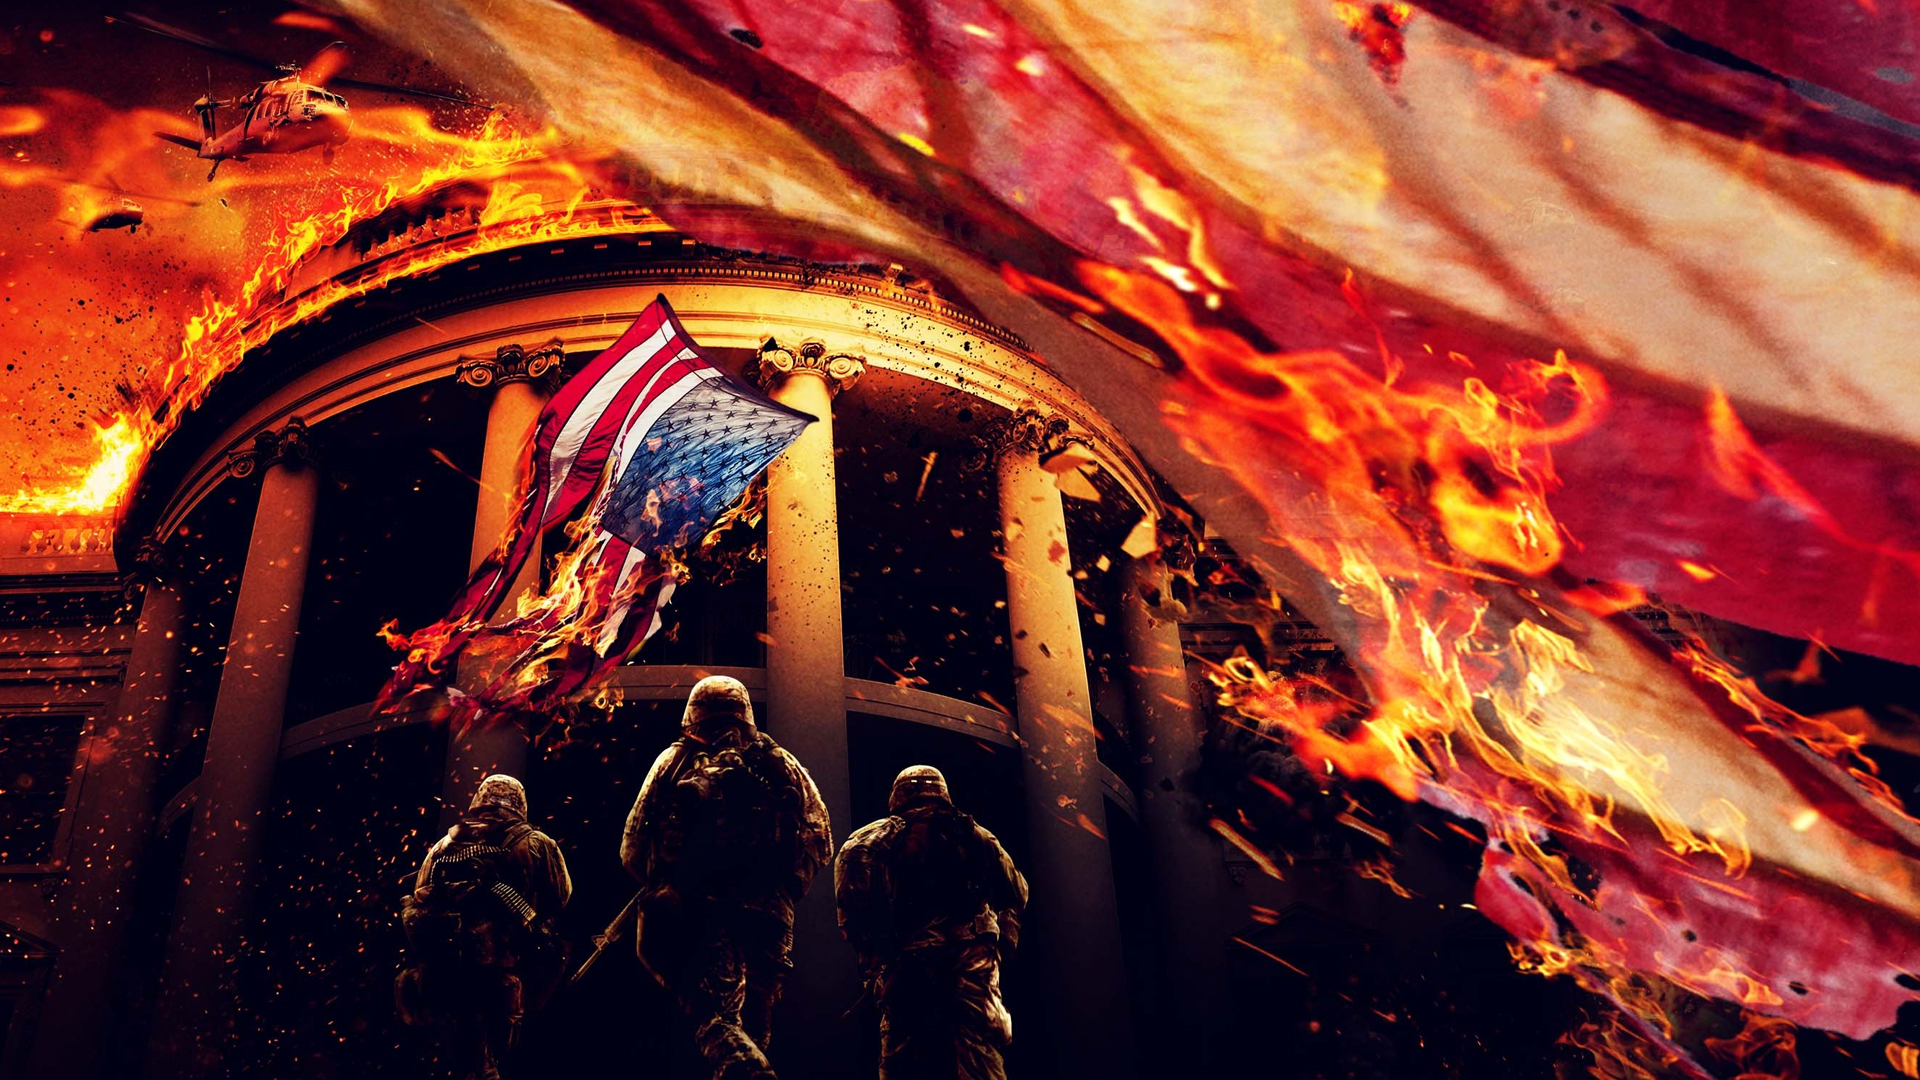 Olympus Has Fallen Wallpaper 1920x1080 by sachso74 1920x1080